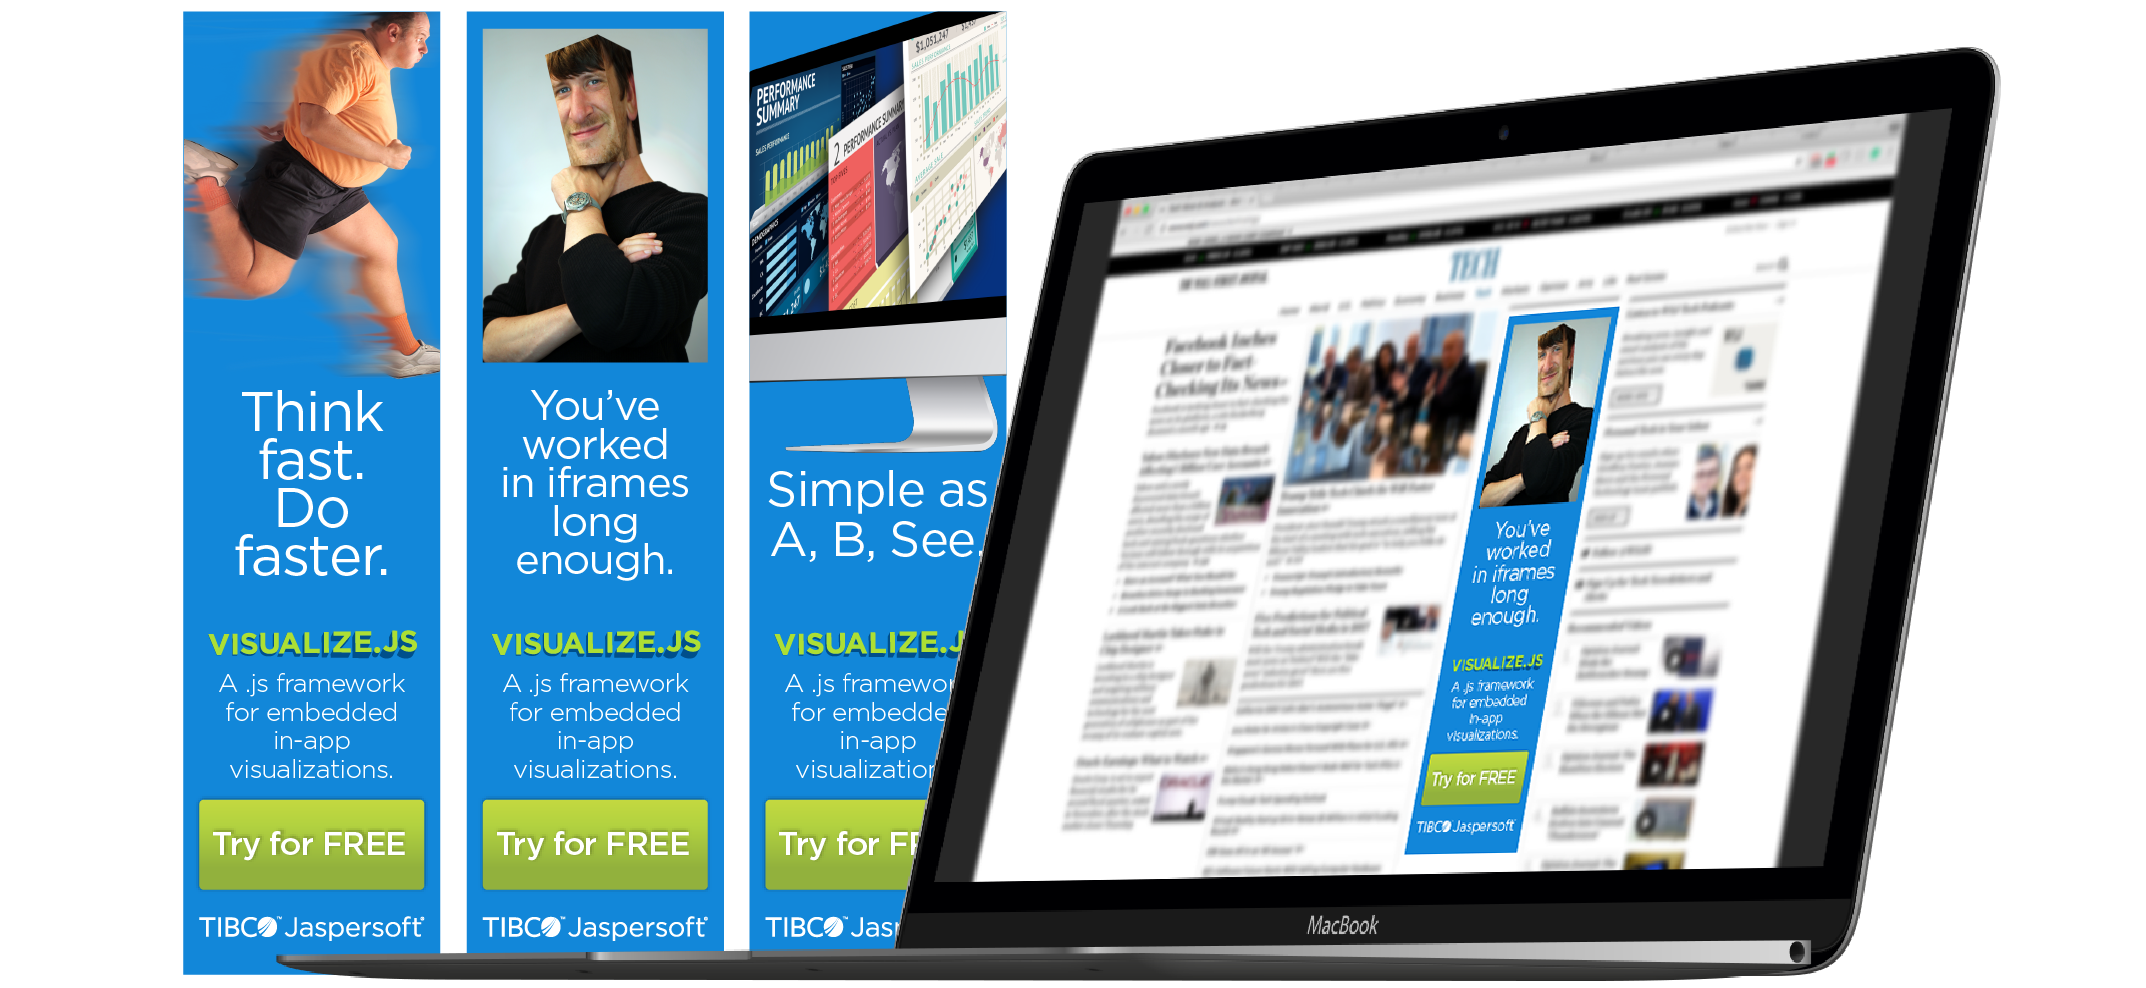 tibco-visualizejs-web-banner-ads